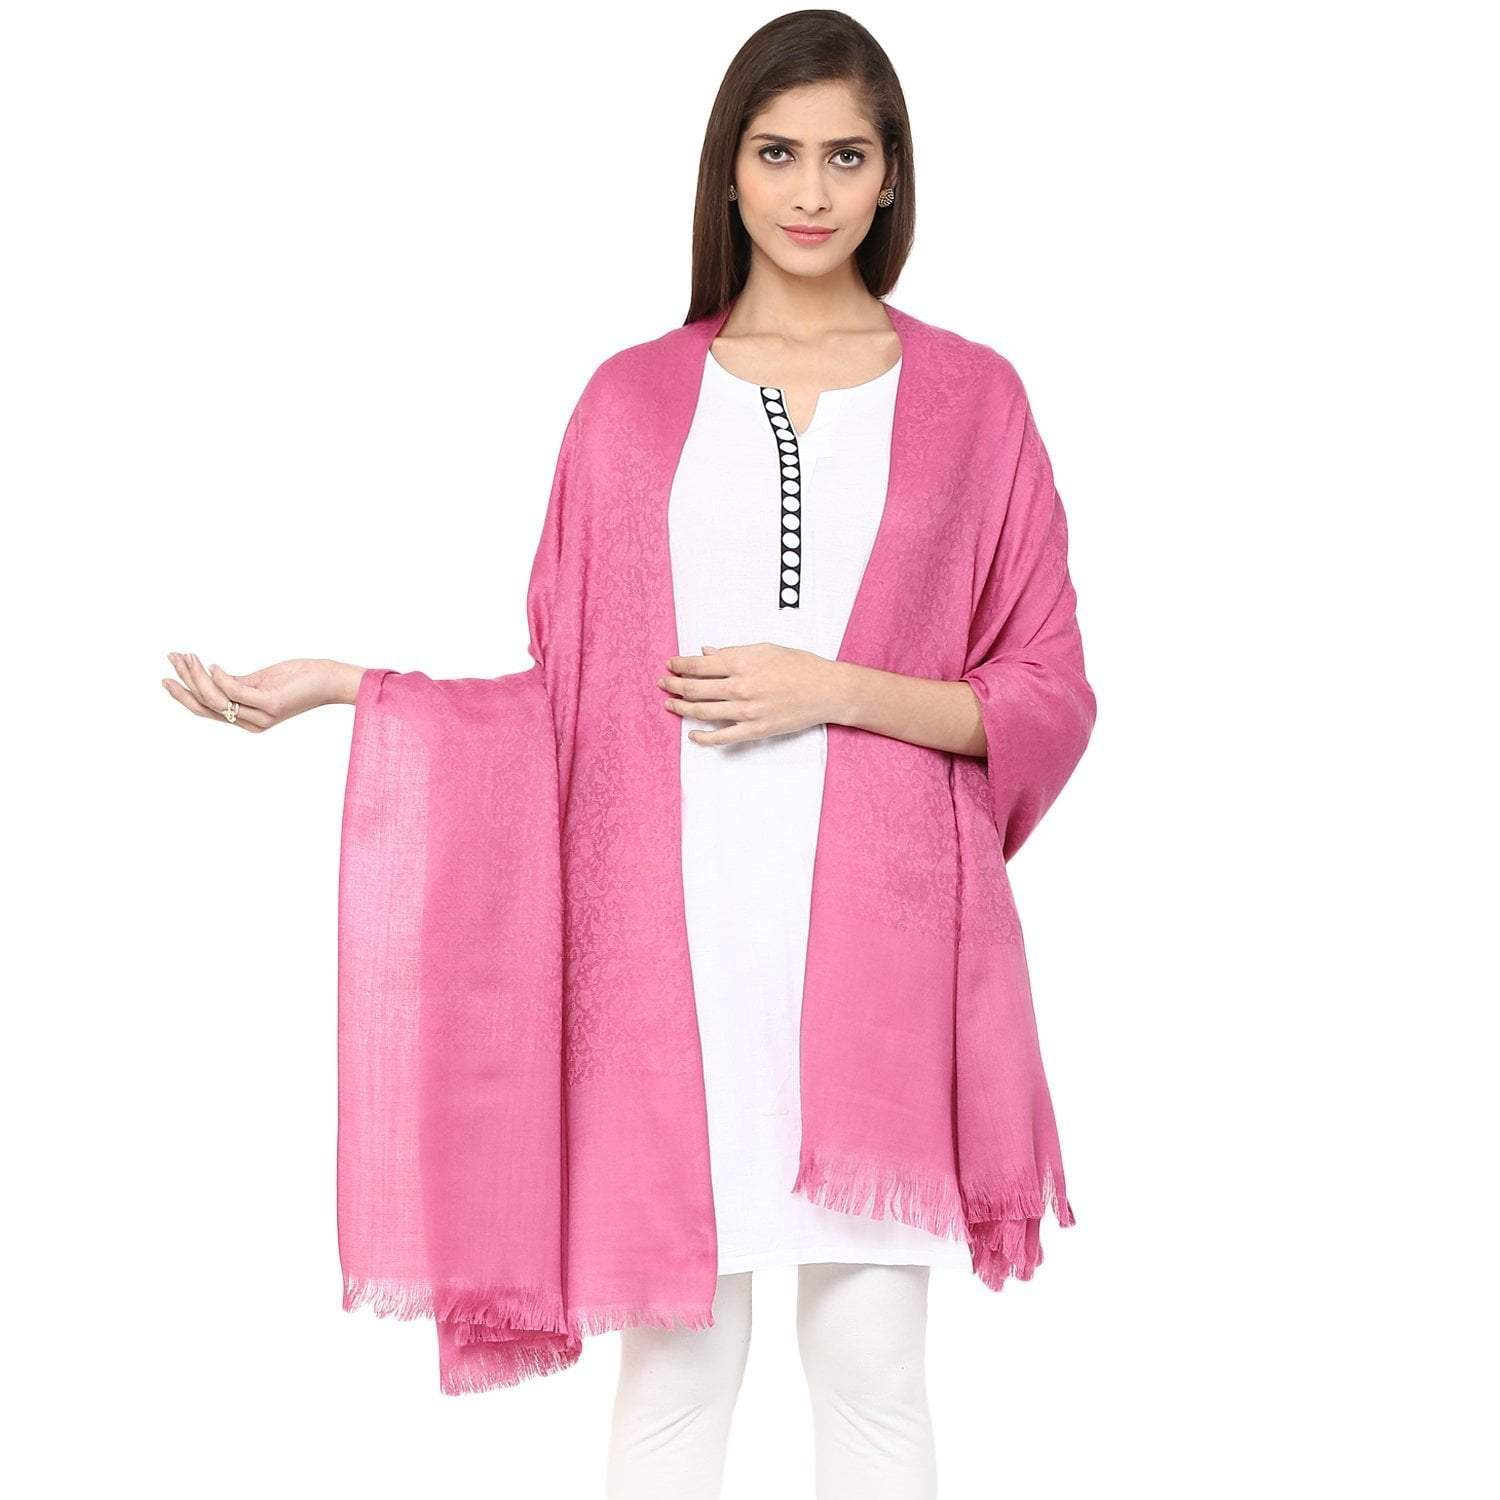 Pashtush Store Pashtush Women's Soft Wool Shawl Pink with Jacquard Design